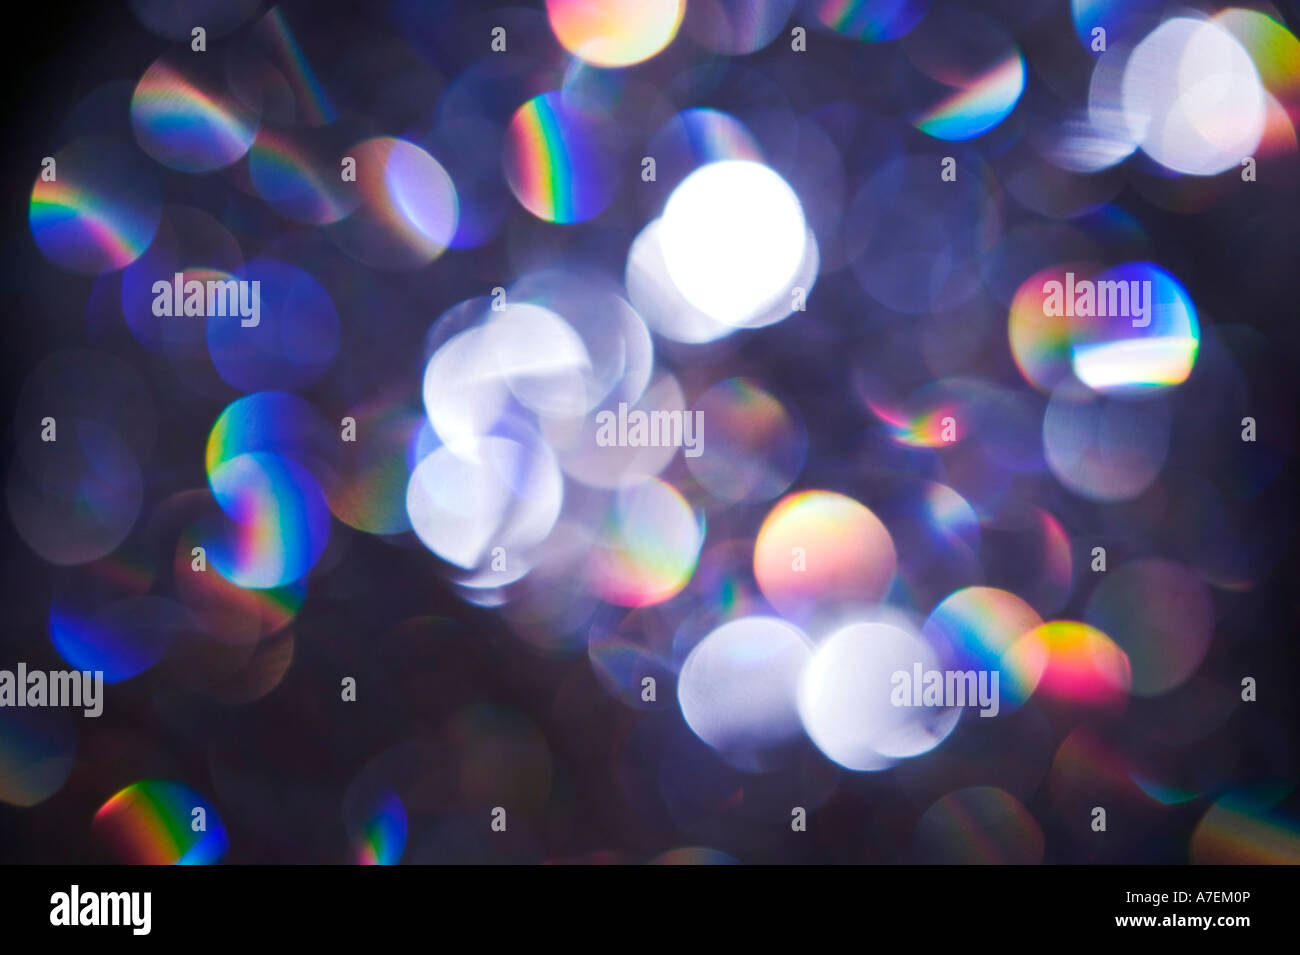 Illuminated sequins with prism light effect - Stock Image